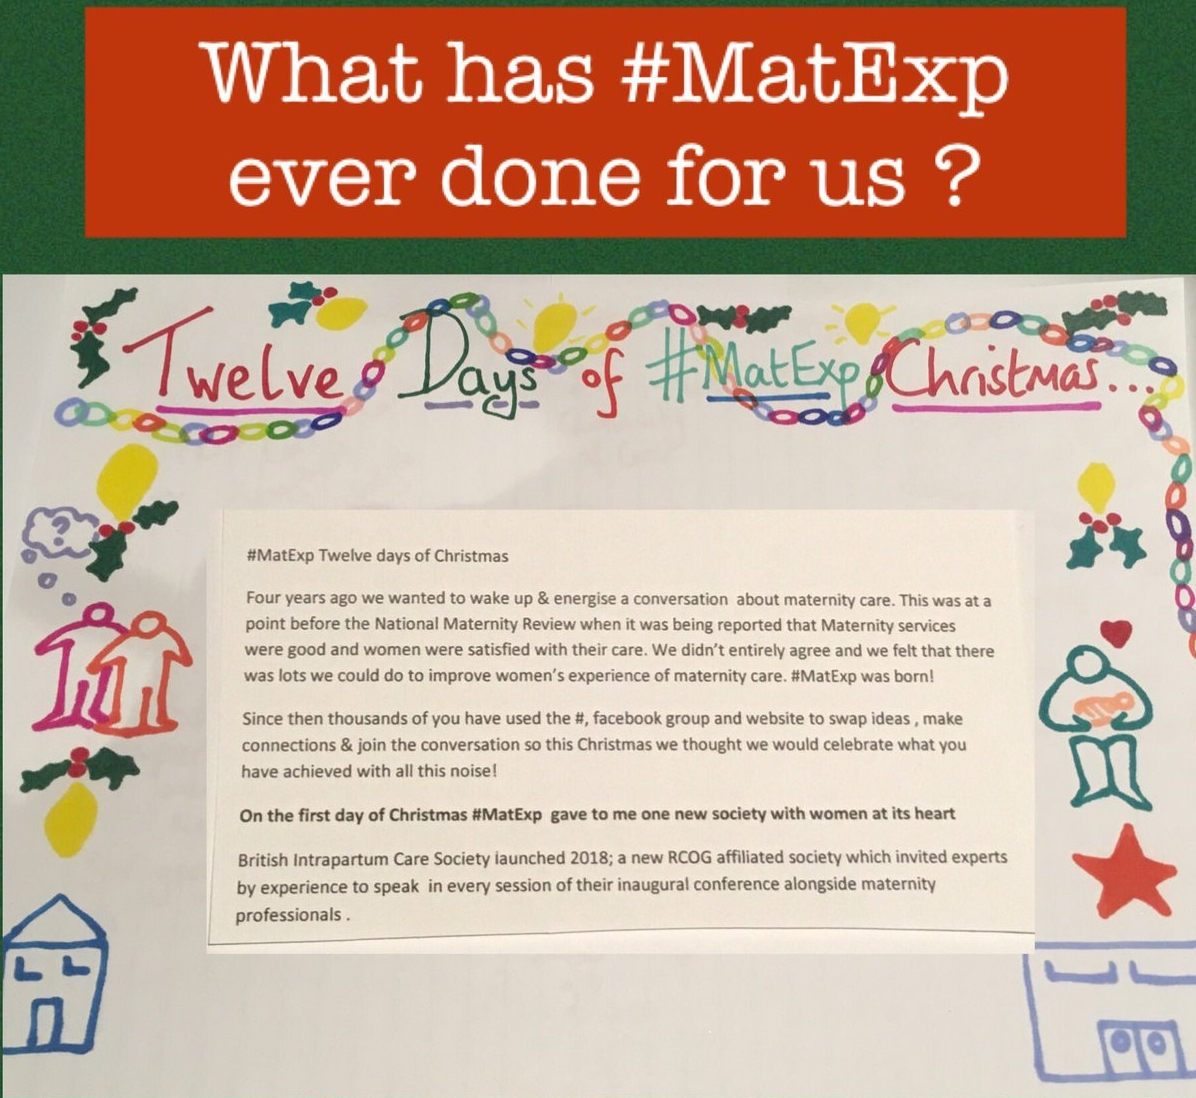 MatExp 12 days of Christmas Day 1